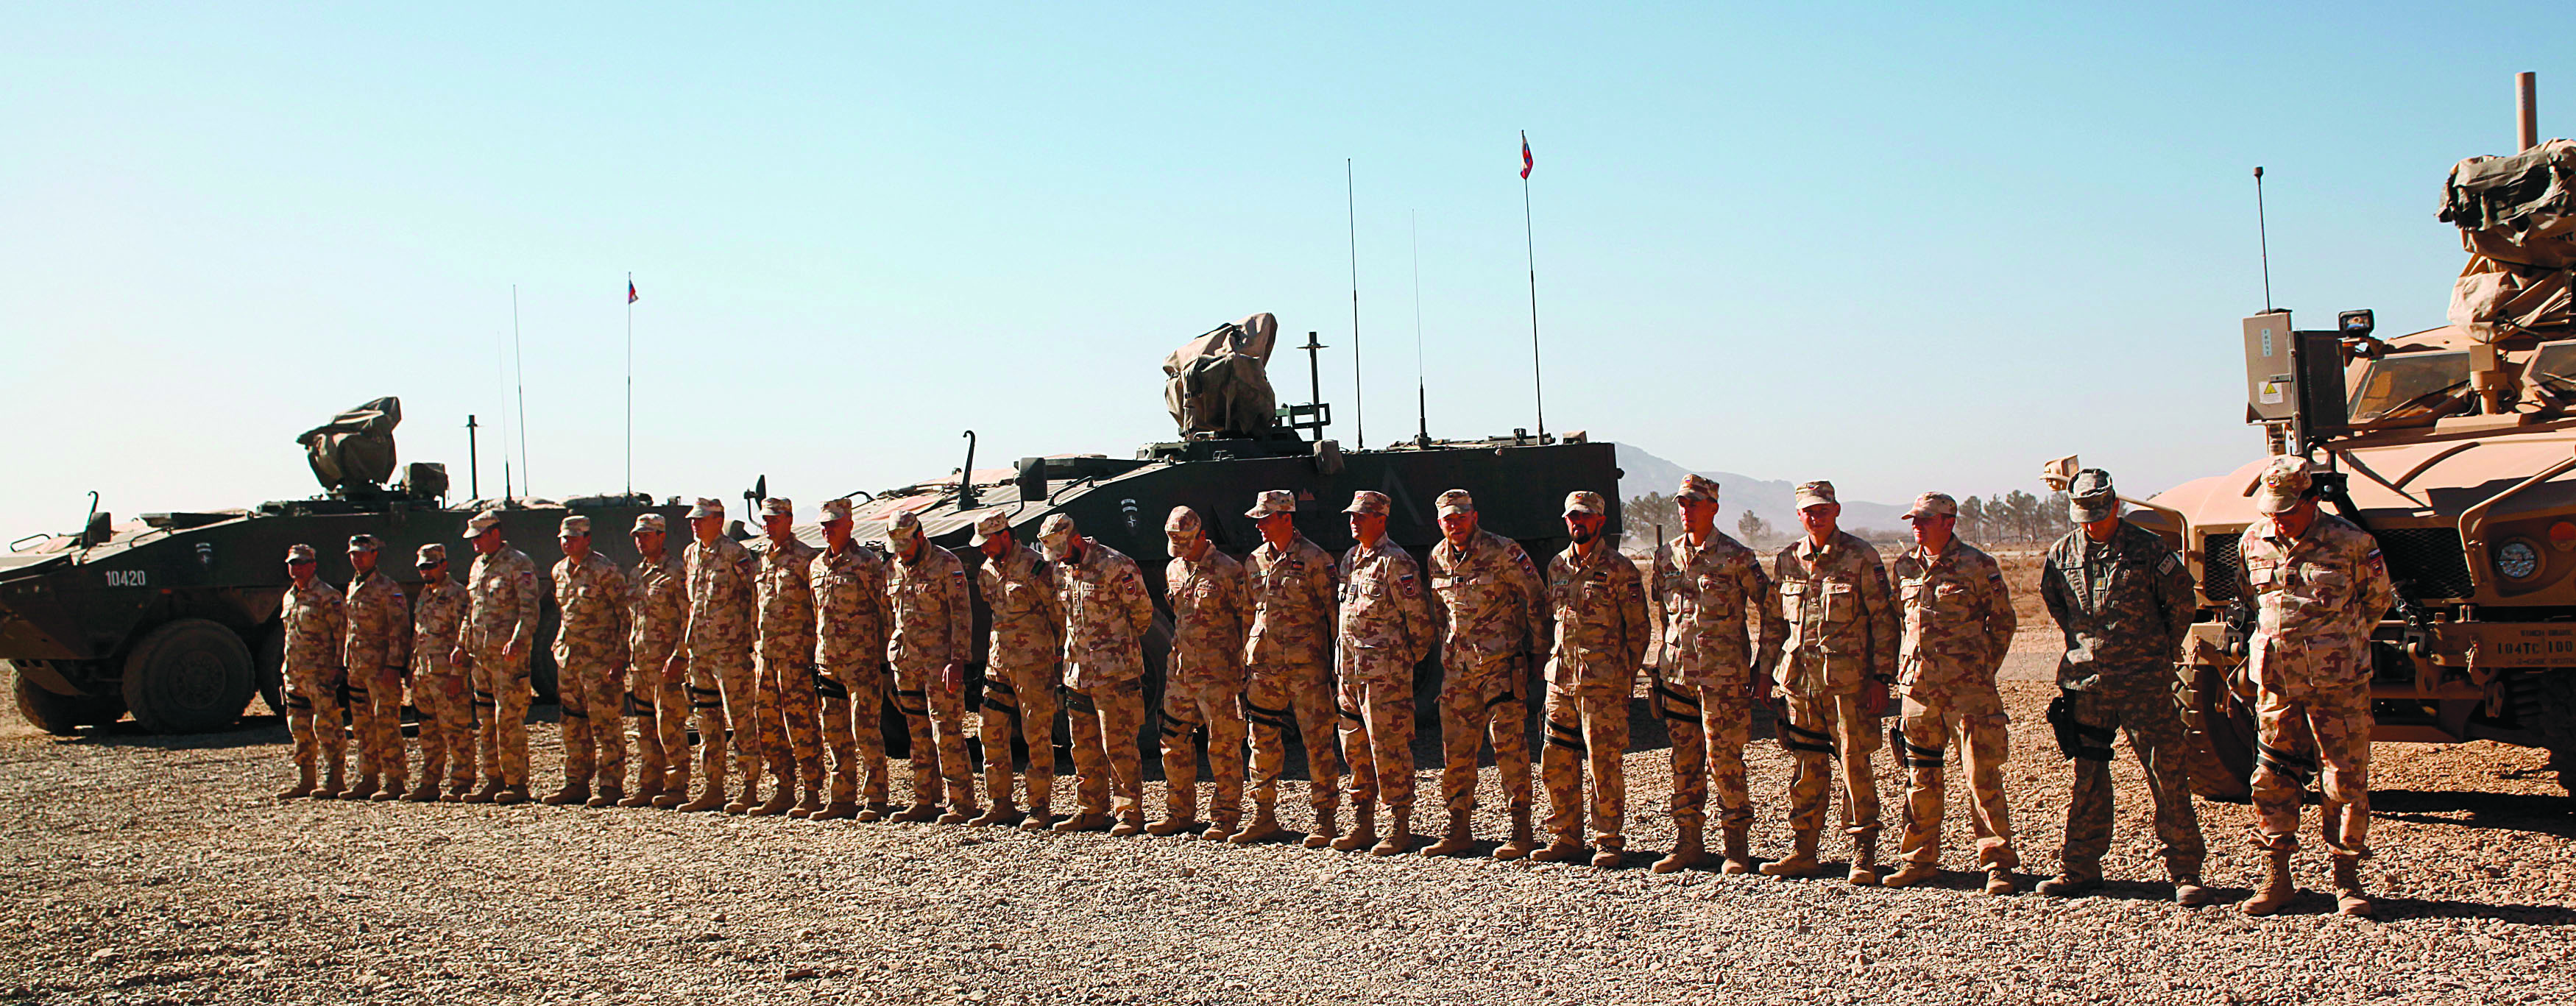 Slovenian servicemen serve the U.S. interests in Gerat province, Afghanistan, 2010.